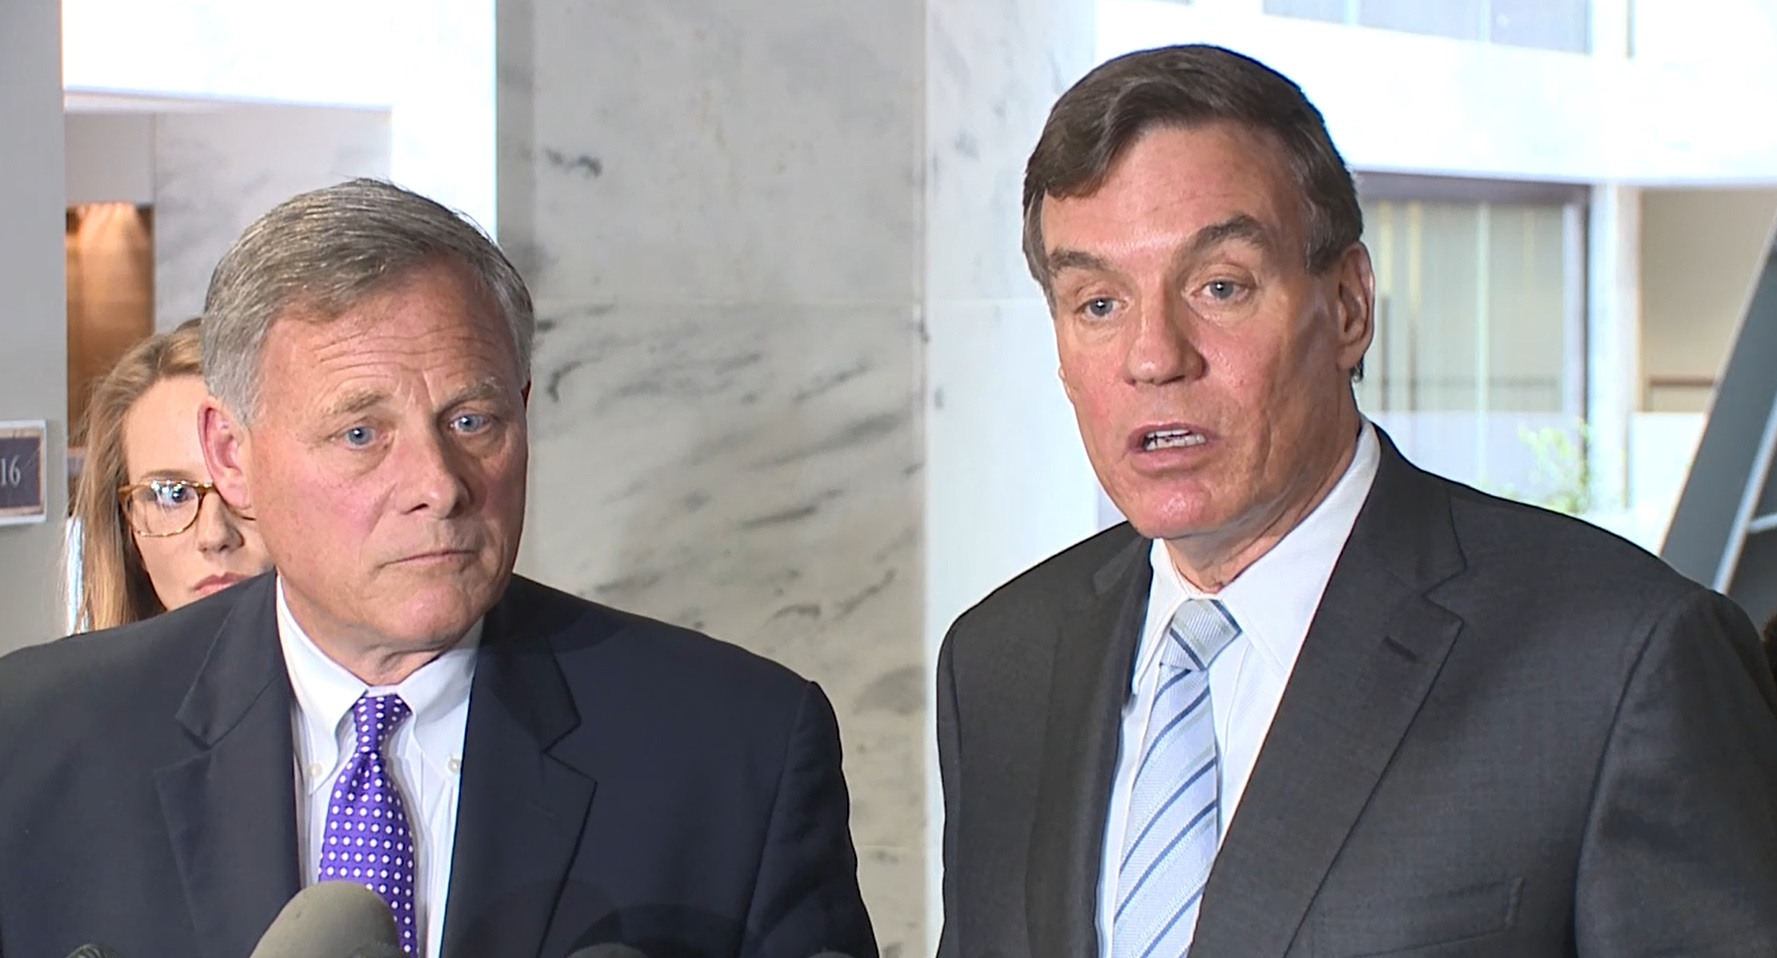 FILE - The heads of the Senate Intelligence Committee, Richard Burr (R-N.C.) and Mark Warner (D-Va.) hold a press conference after meeting with Deputy Attorney General Rod Rosenstein on Capitol Hill, Thurs. May 11, 2017. (Sinclair Broadcast Group)